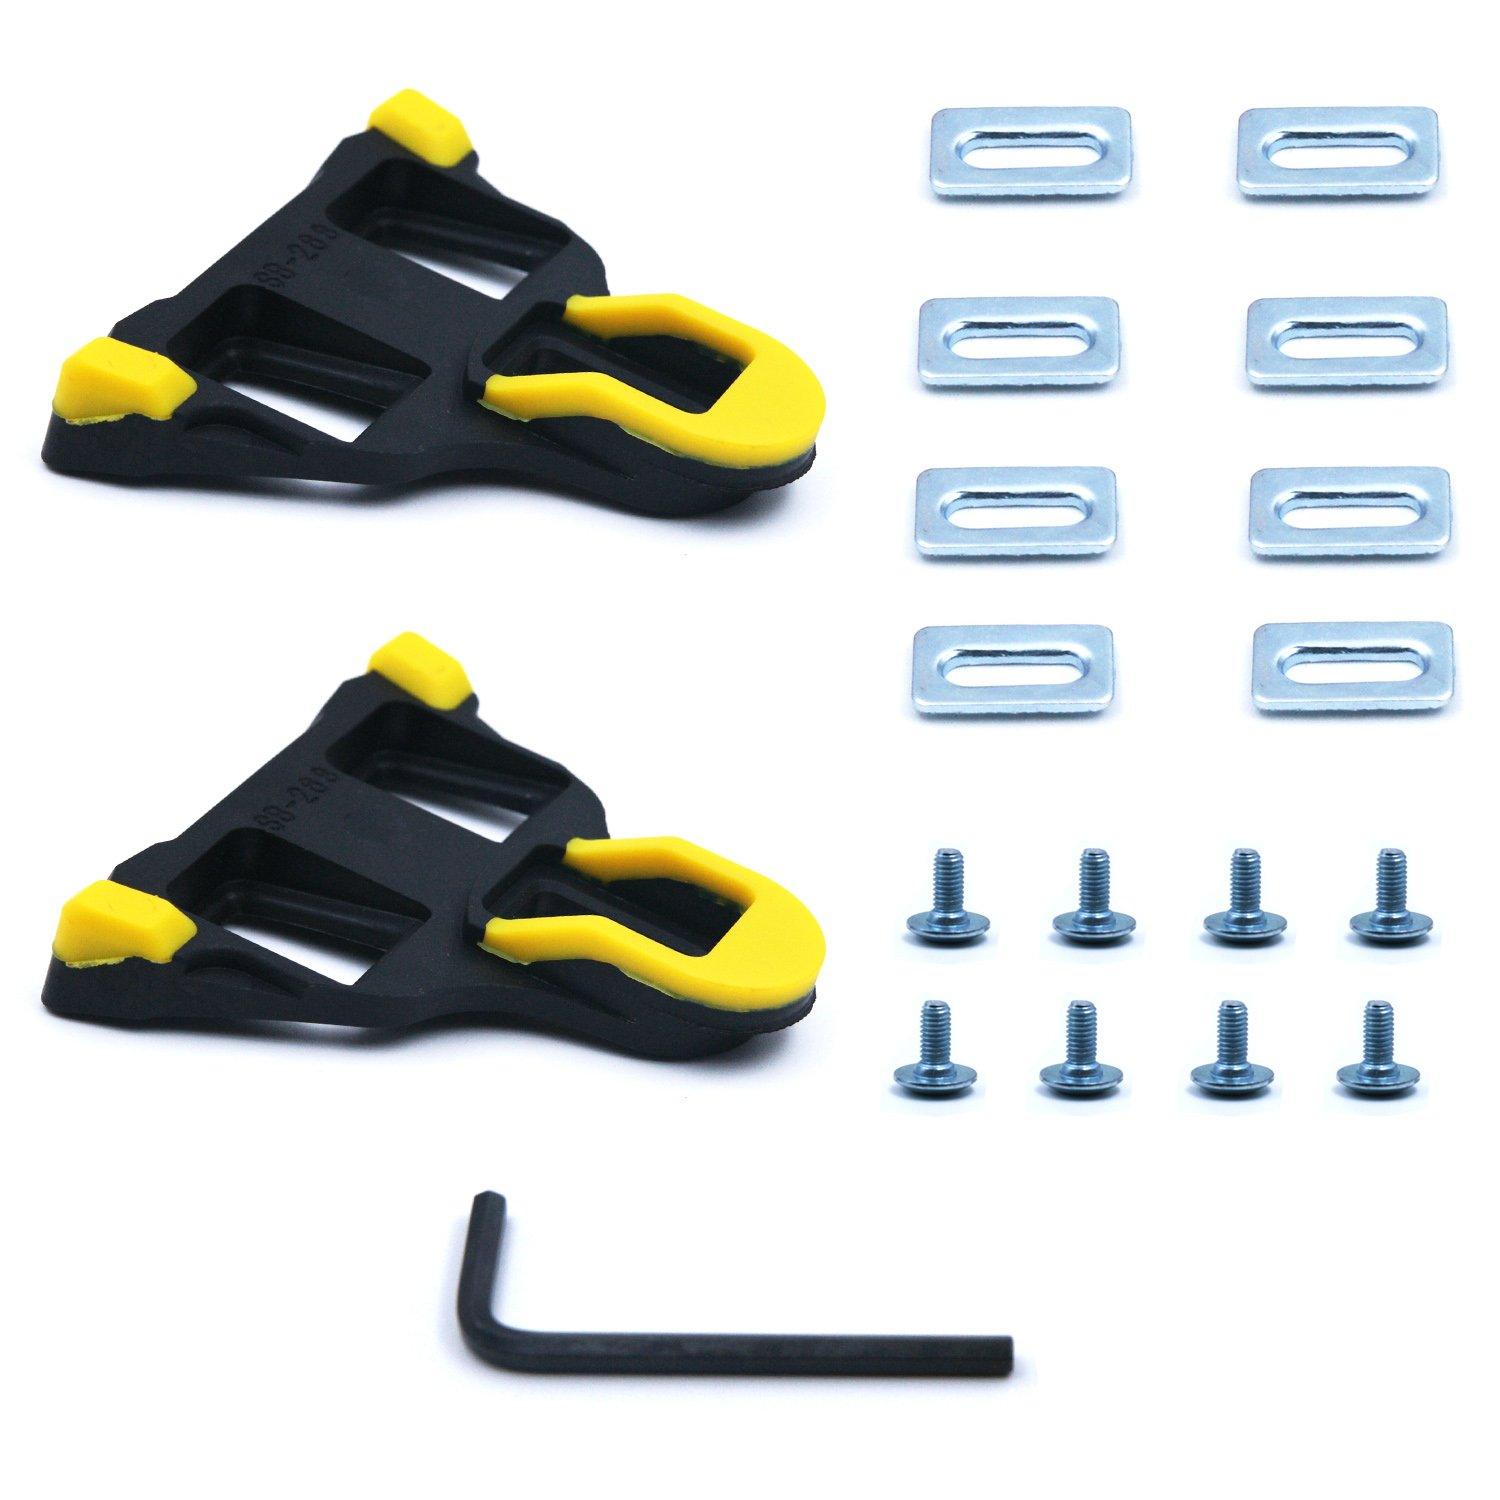 ea44b7e46872 Loosco Road Bike Cleats 6 Degree Float Self-locking Cycling Pedals Cleat  For Shimano SH